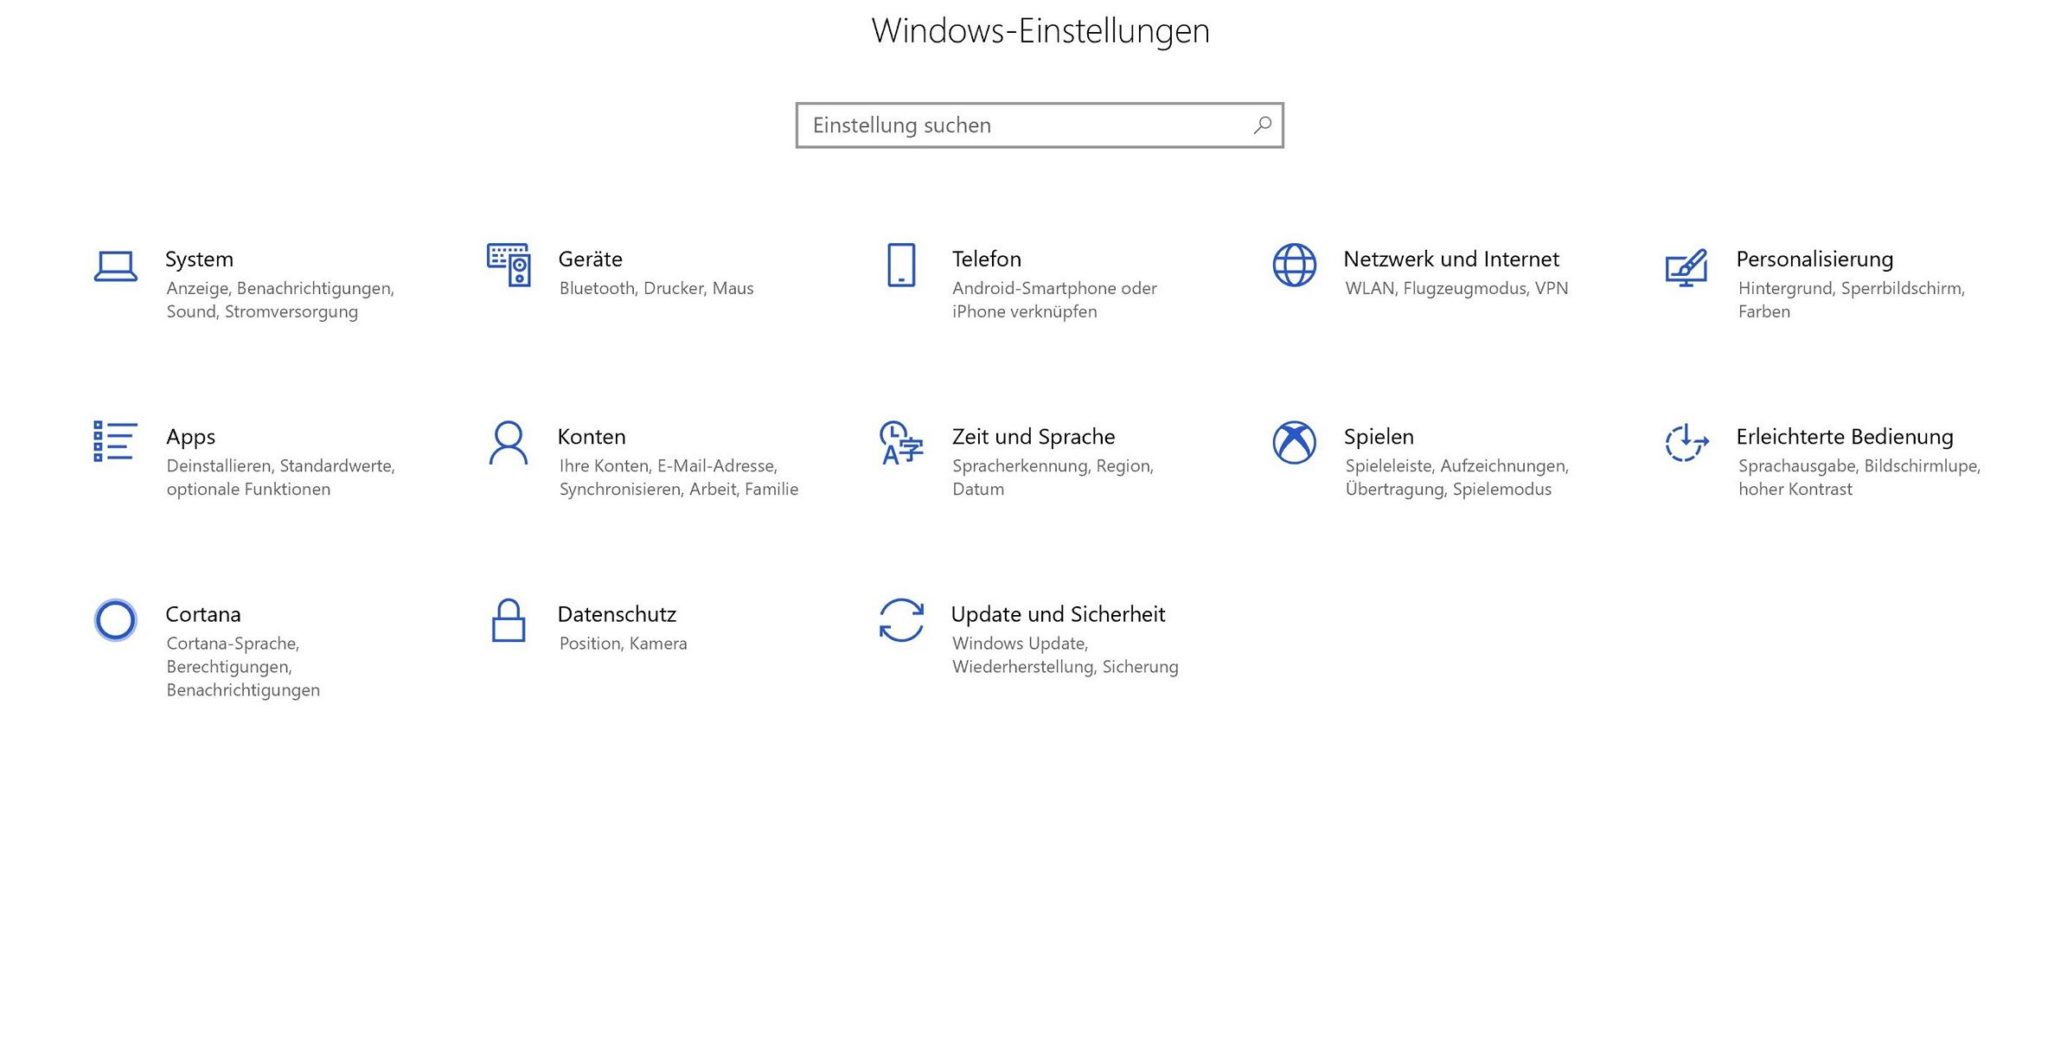 Windows 10 Einstellungen alt